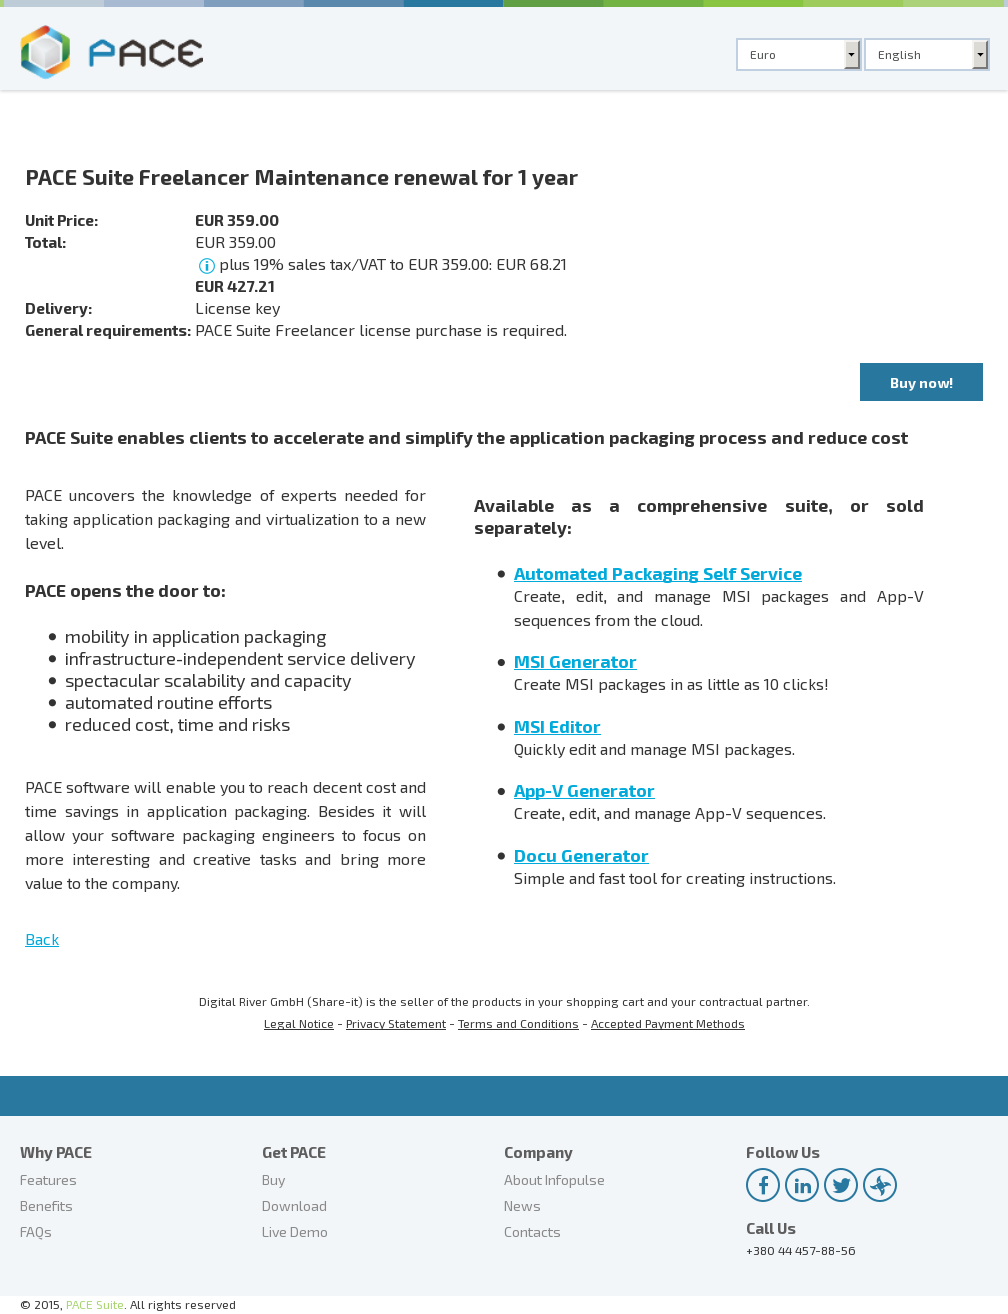 PACE Suite Freelancer Maintenance renewal for 1 year